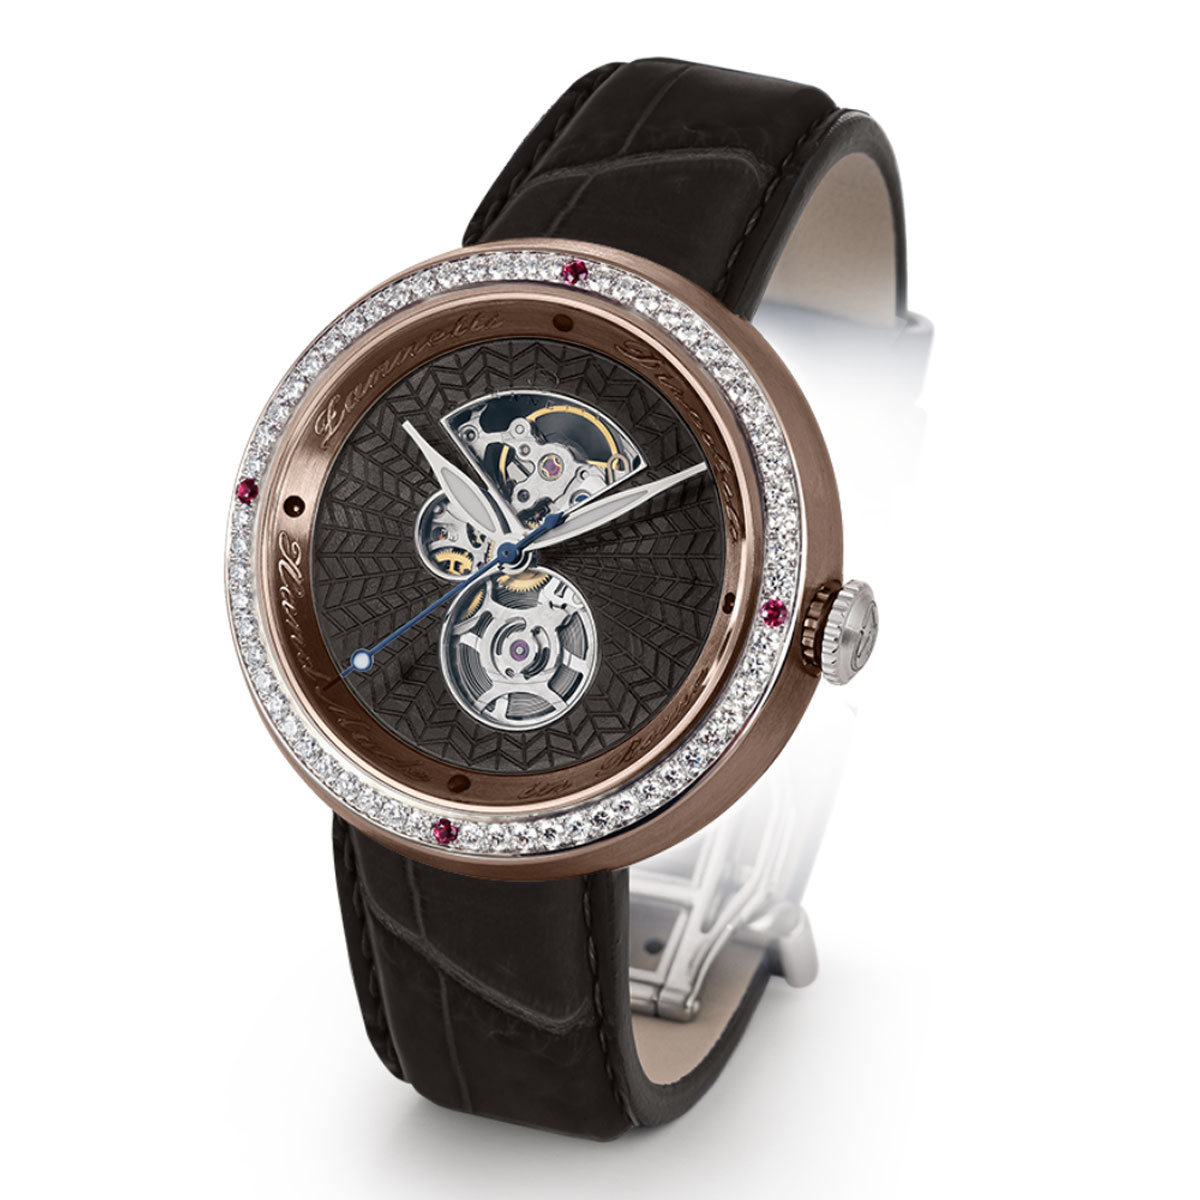 Zannetti Discobolo Men's Watch – Black Enamel Dial - Diamonds - Bronze Case